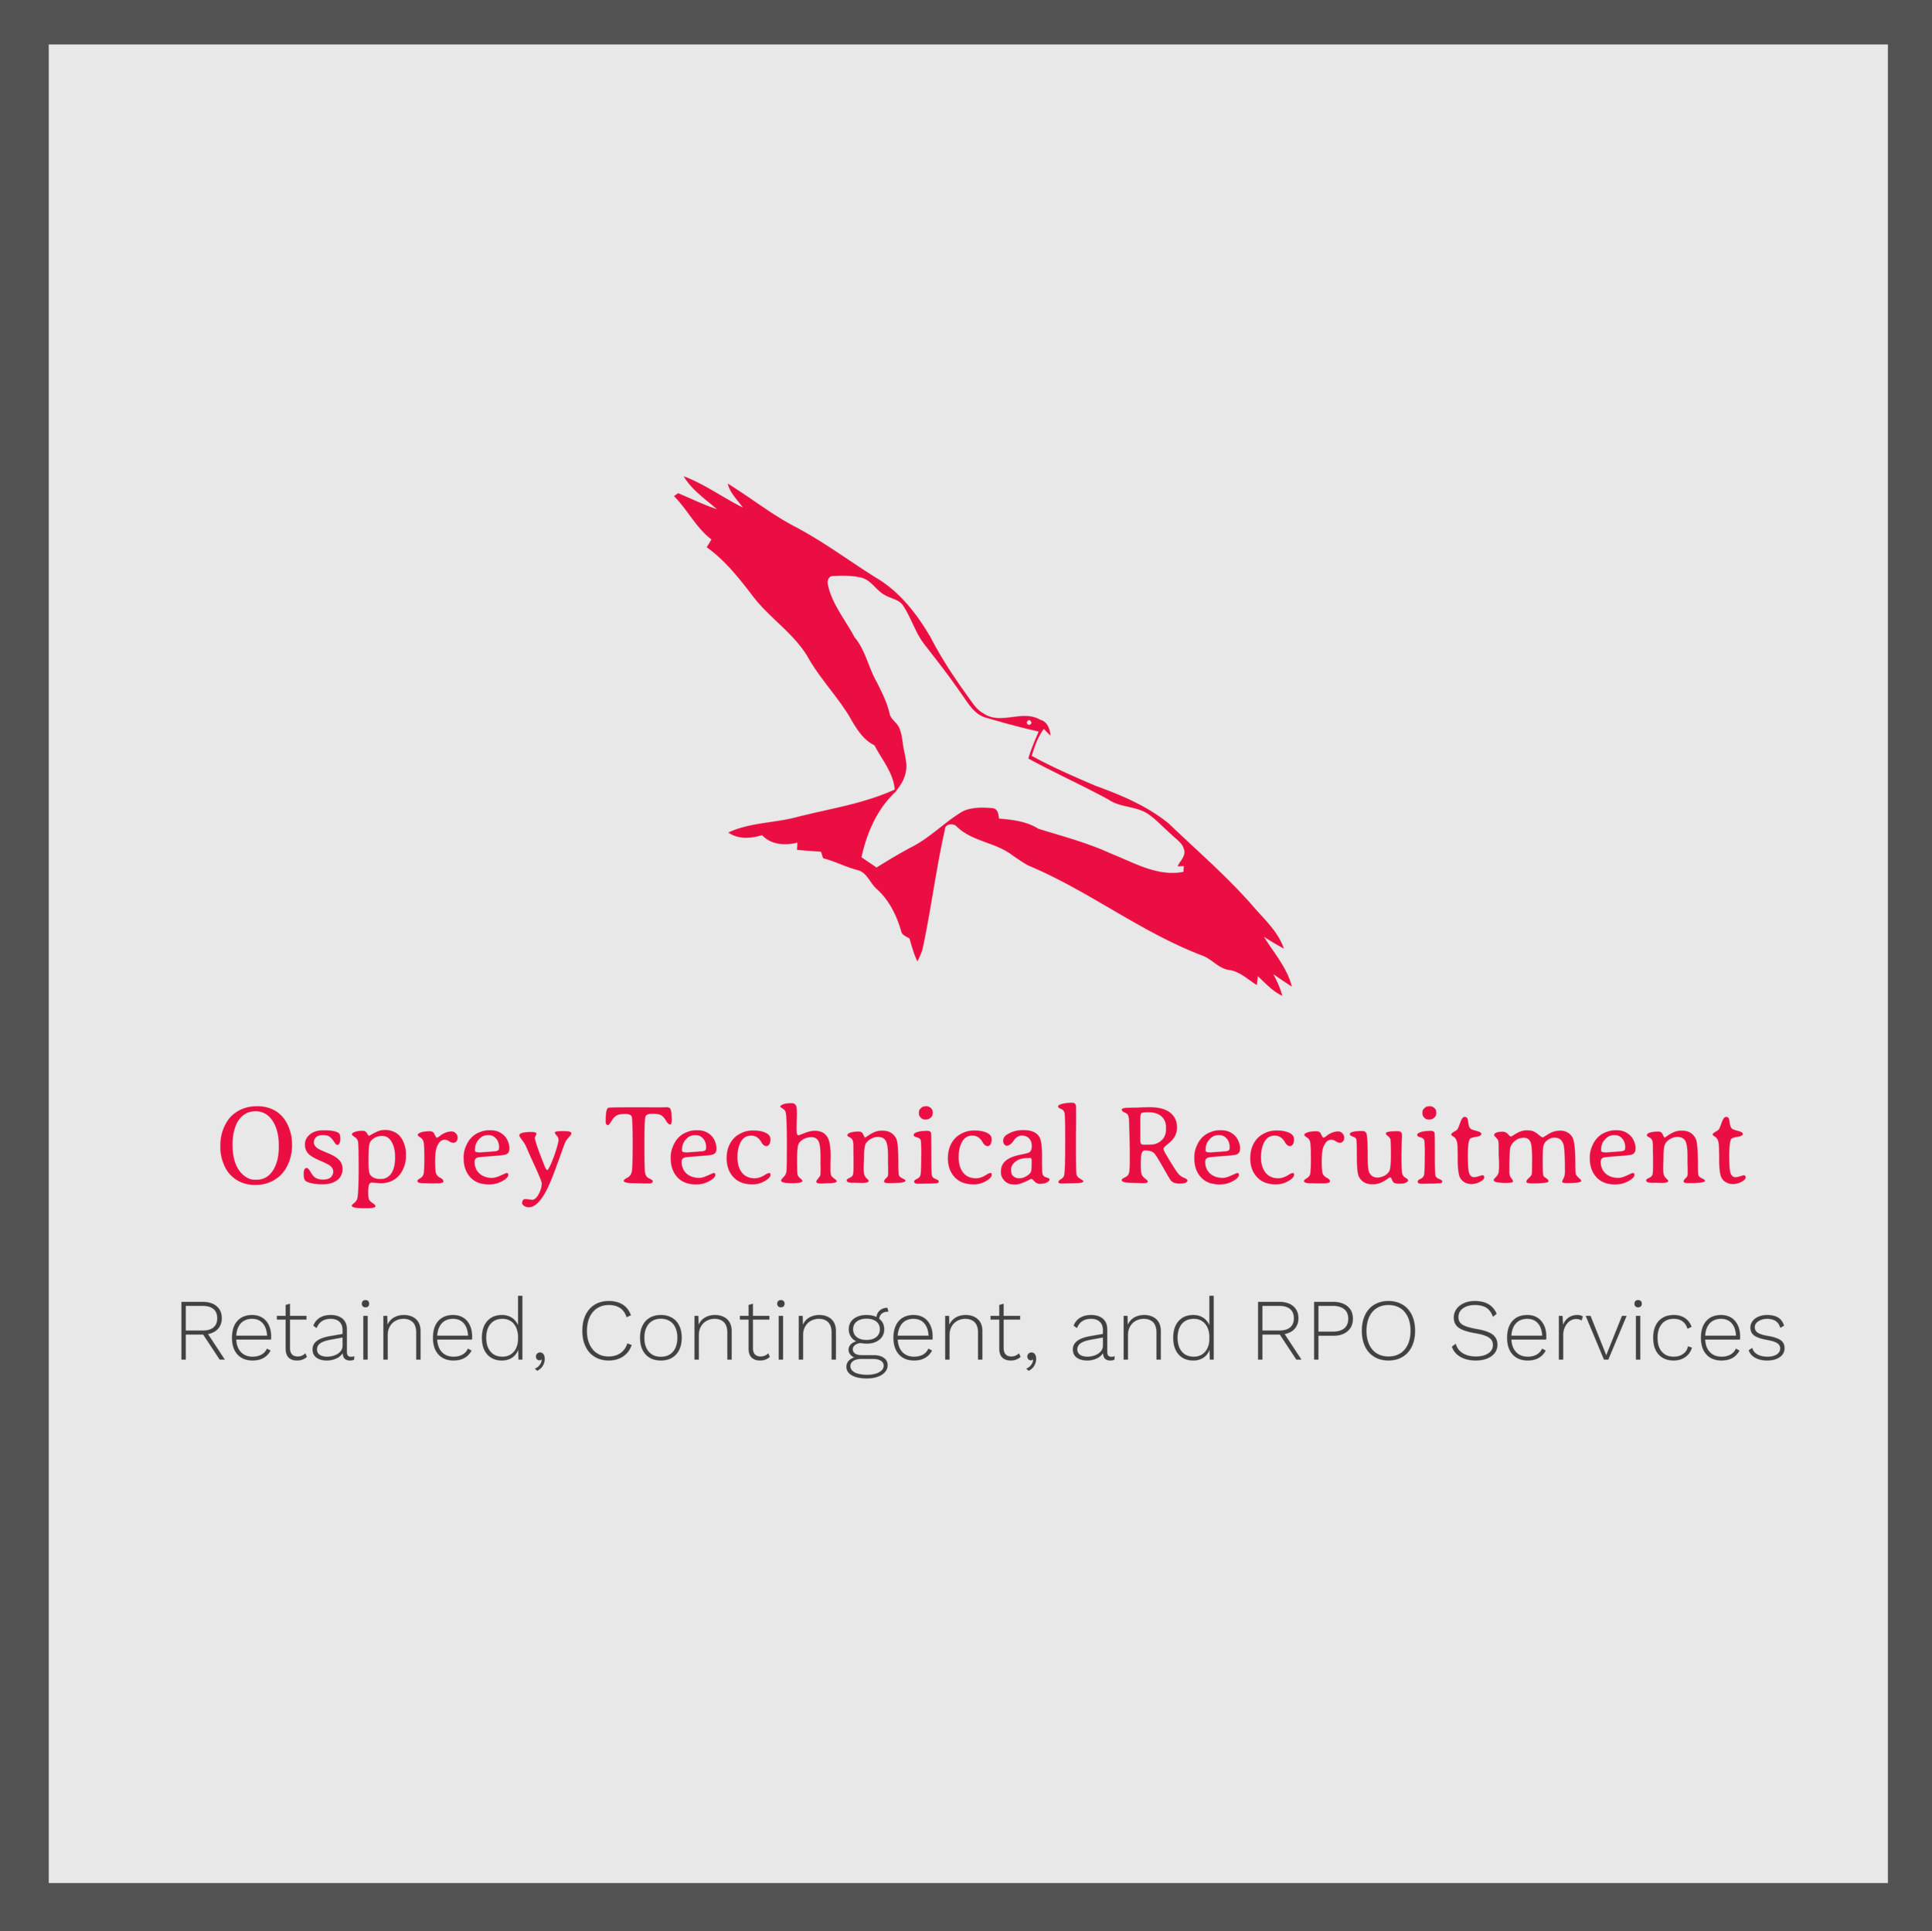 Osprey Technical Recruitment Logo.jpg